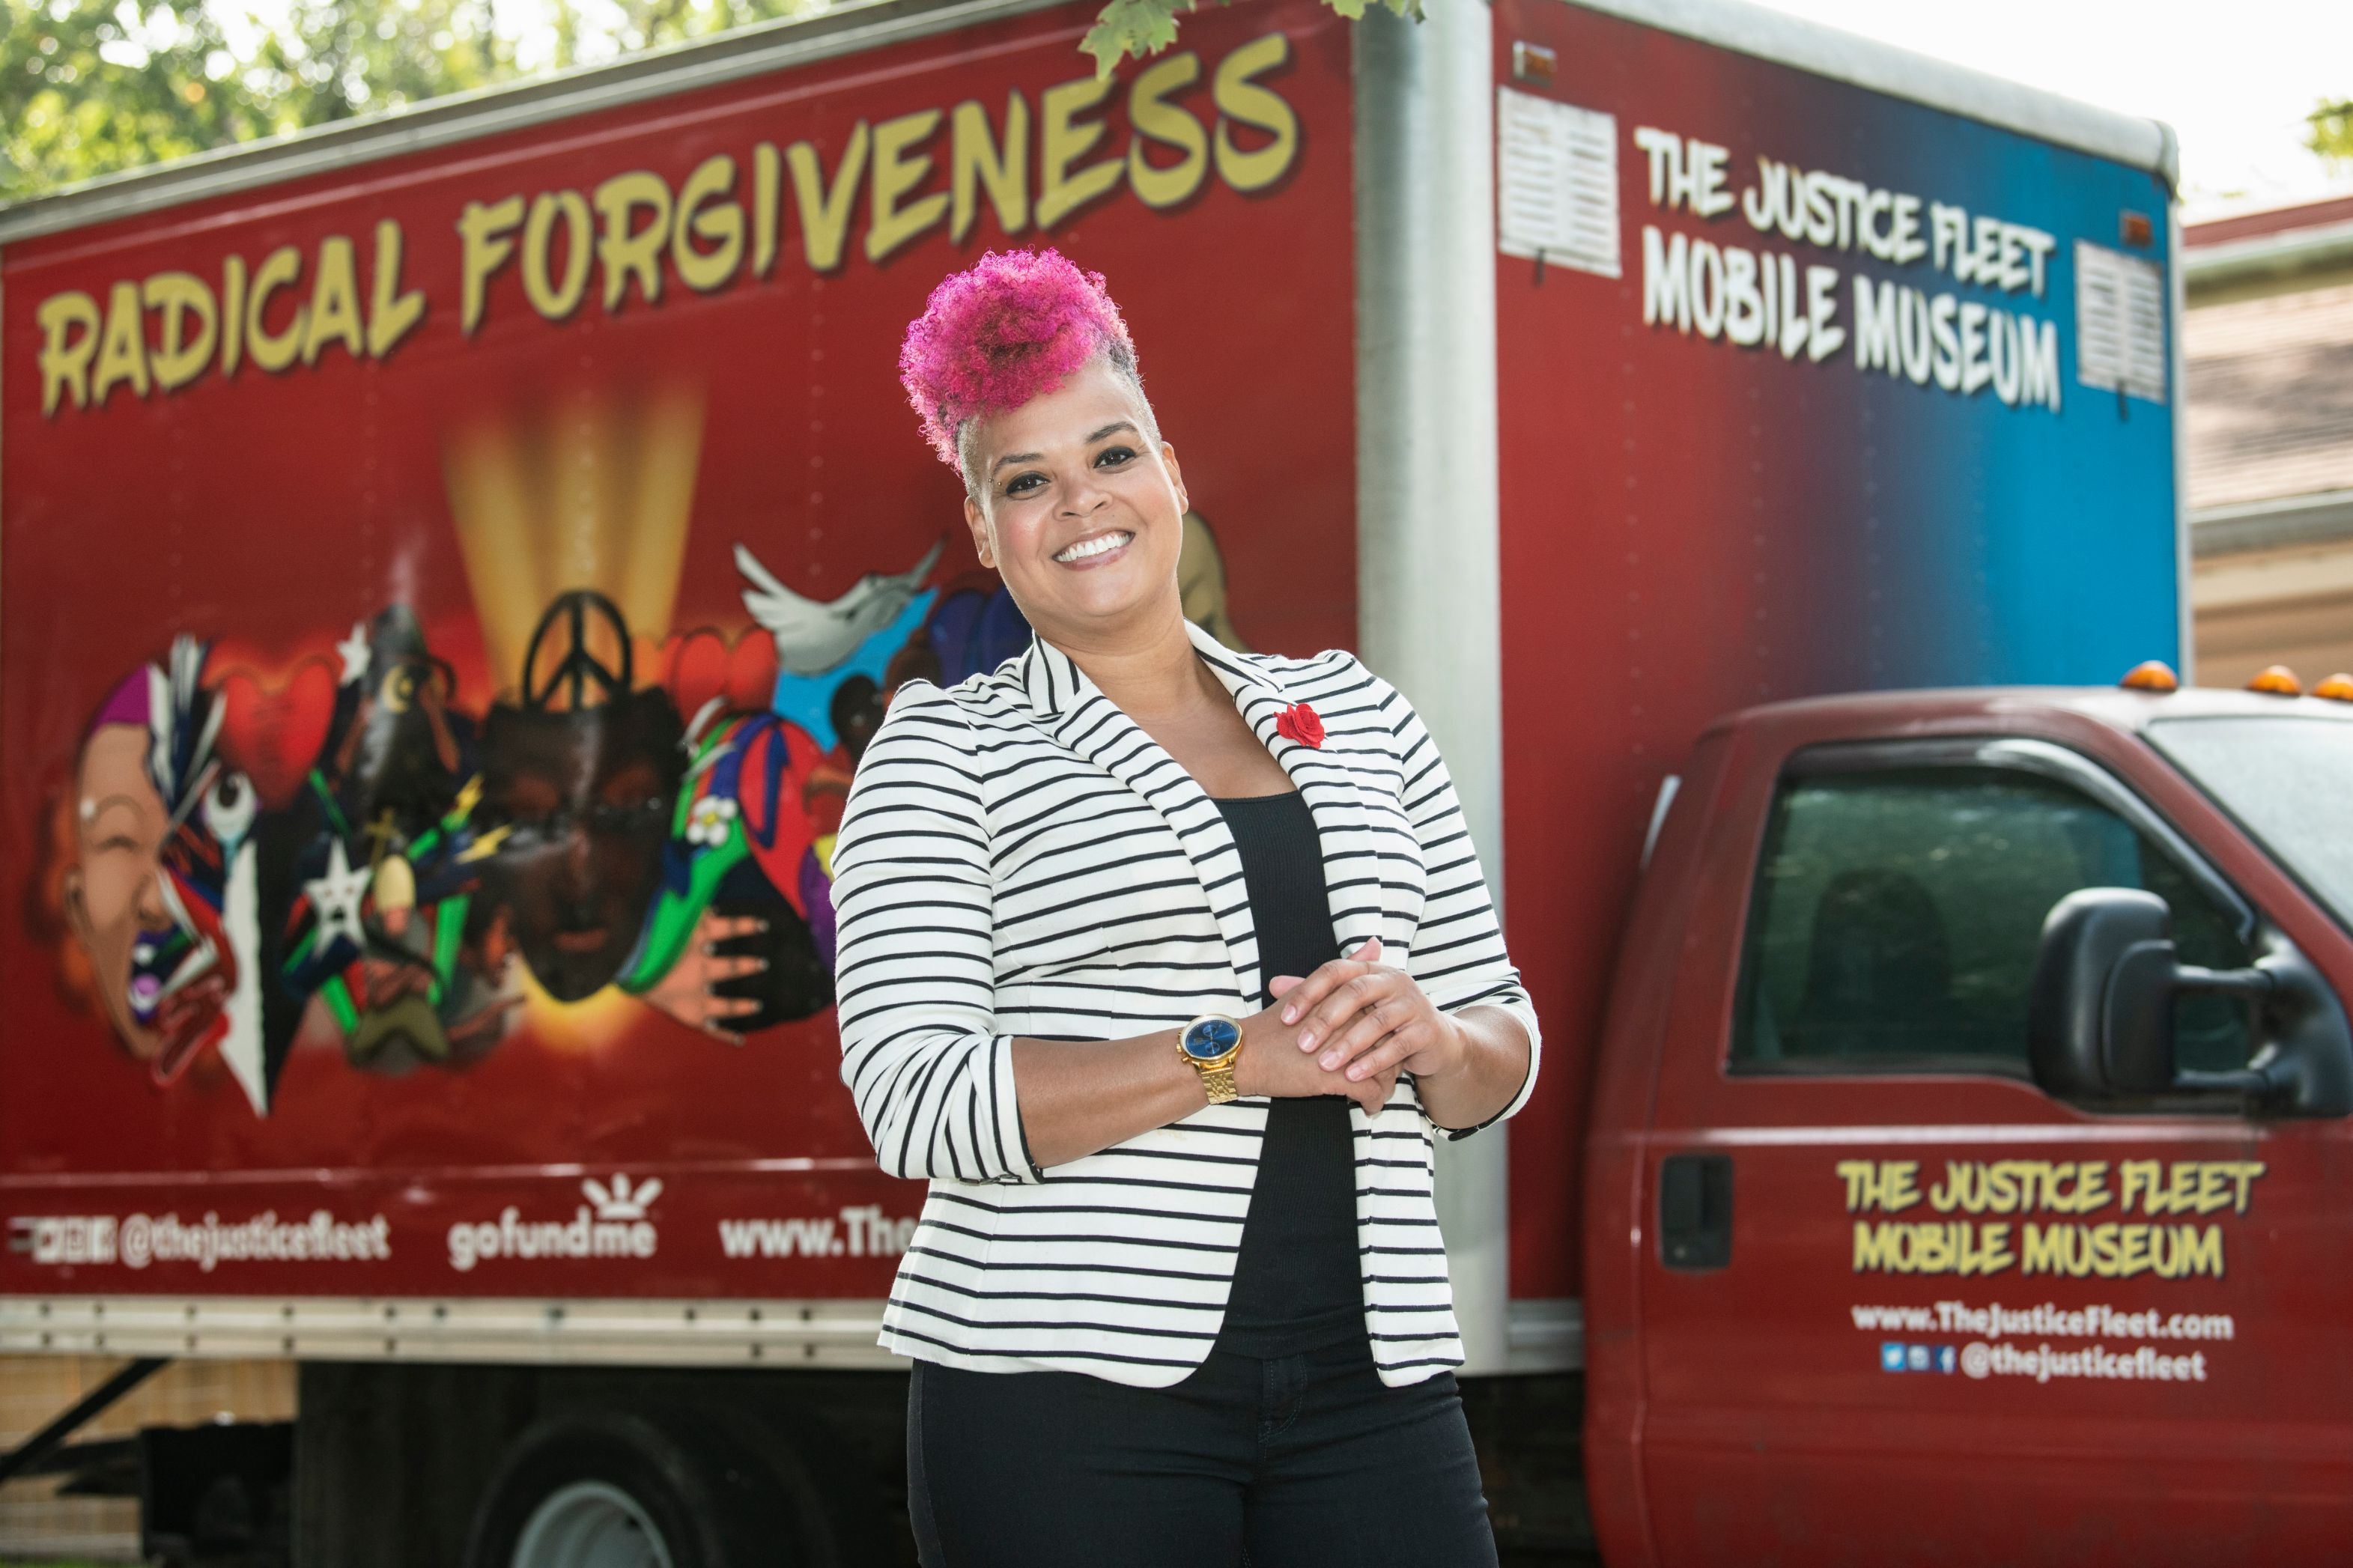 Amber Johnson stands in front of the Justice Fleet Mobile Museum